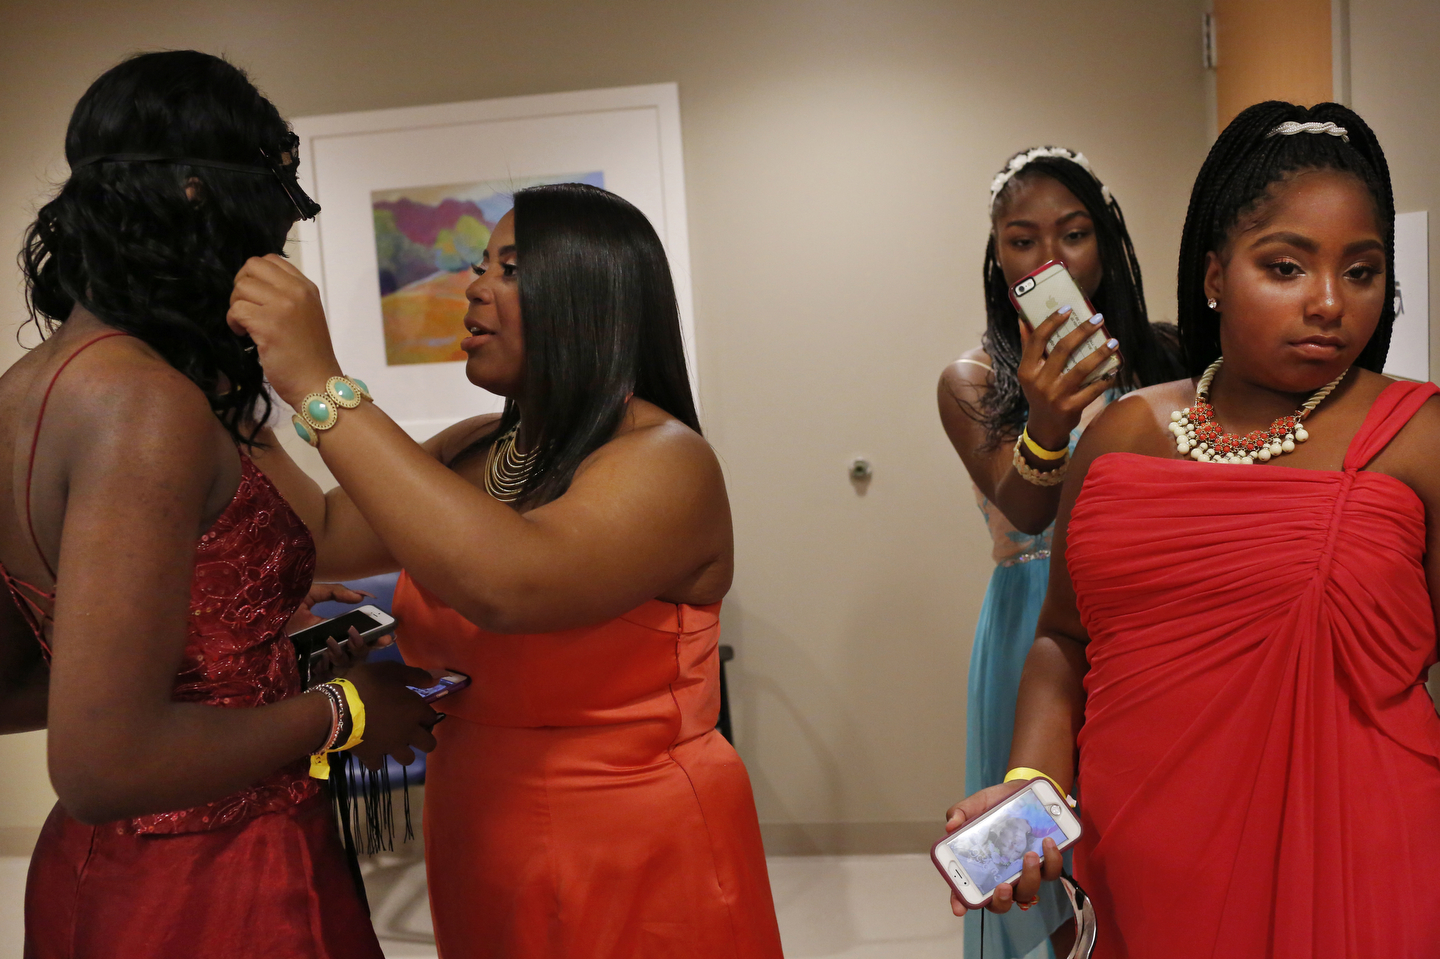 Destiny Willis, 14, left center, adjusts a mask onto Johnae Prowell, 17, far left, as Trinity Hayden, 14, center right, uses her phone and Aarionna Seals, 12, checks out the scene as they wait in the hallway to enter the dance during Kaiser Permanente Oakland's Pediatric Prom at Oakland Medical Center Sept. 24, 2016 in Oakland, Calif. The second annual dance was attended by around 100 teens who were otherwise unable to have the traditional school dance experience due to trauma or illness.